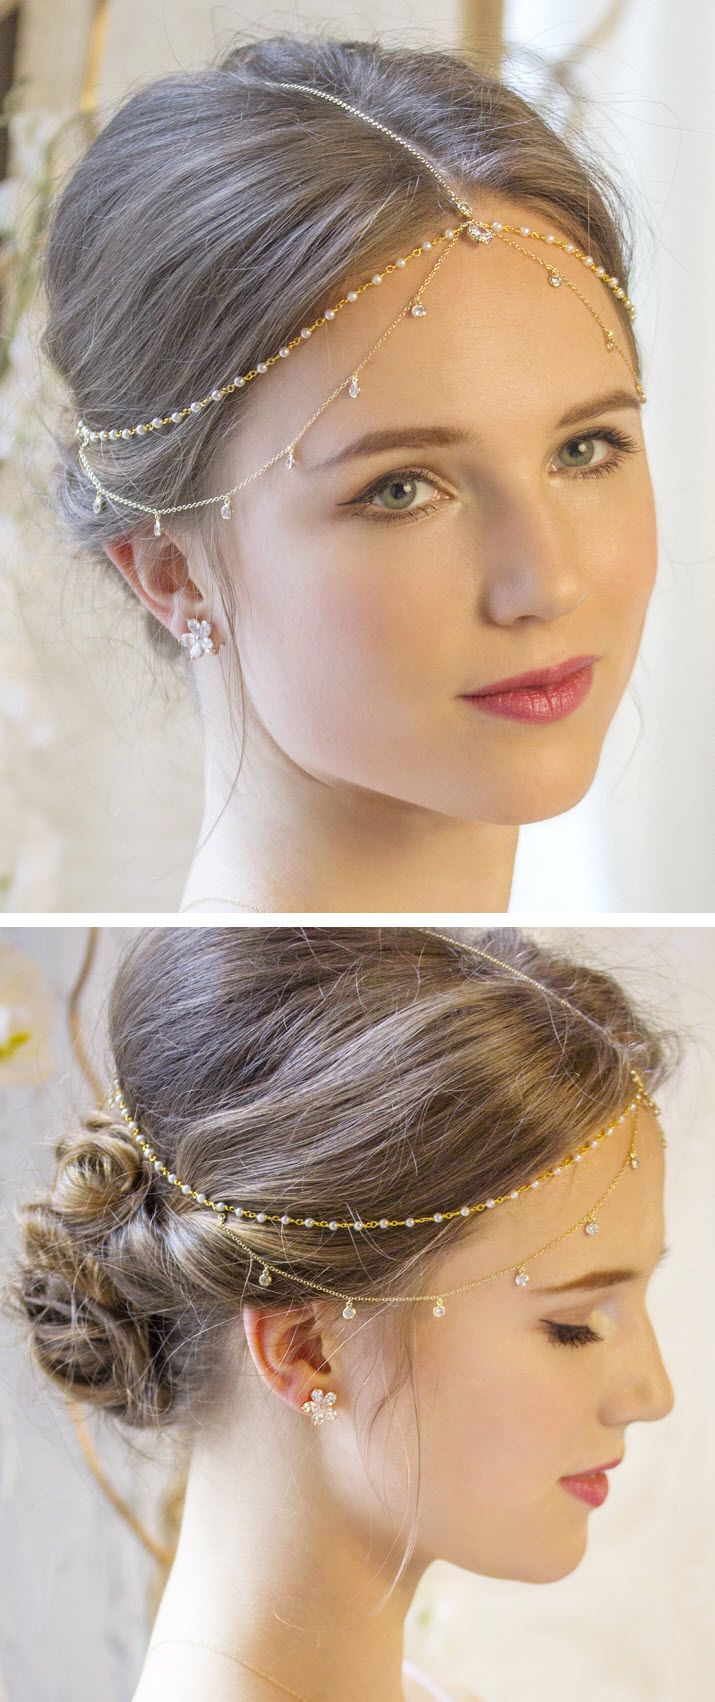 Modern Bridal Headpiece Gift for her Long Hair Accessory in Sterling Silver